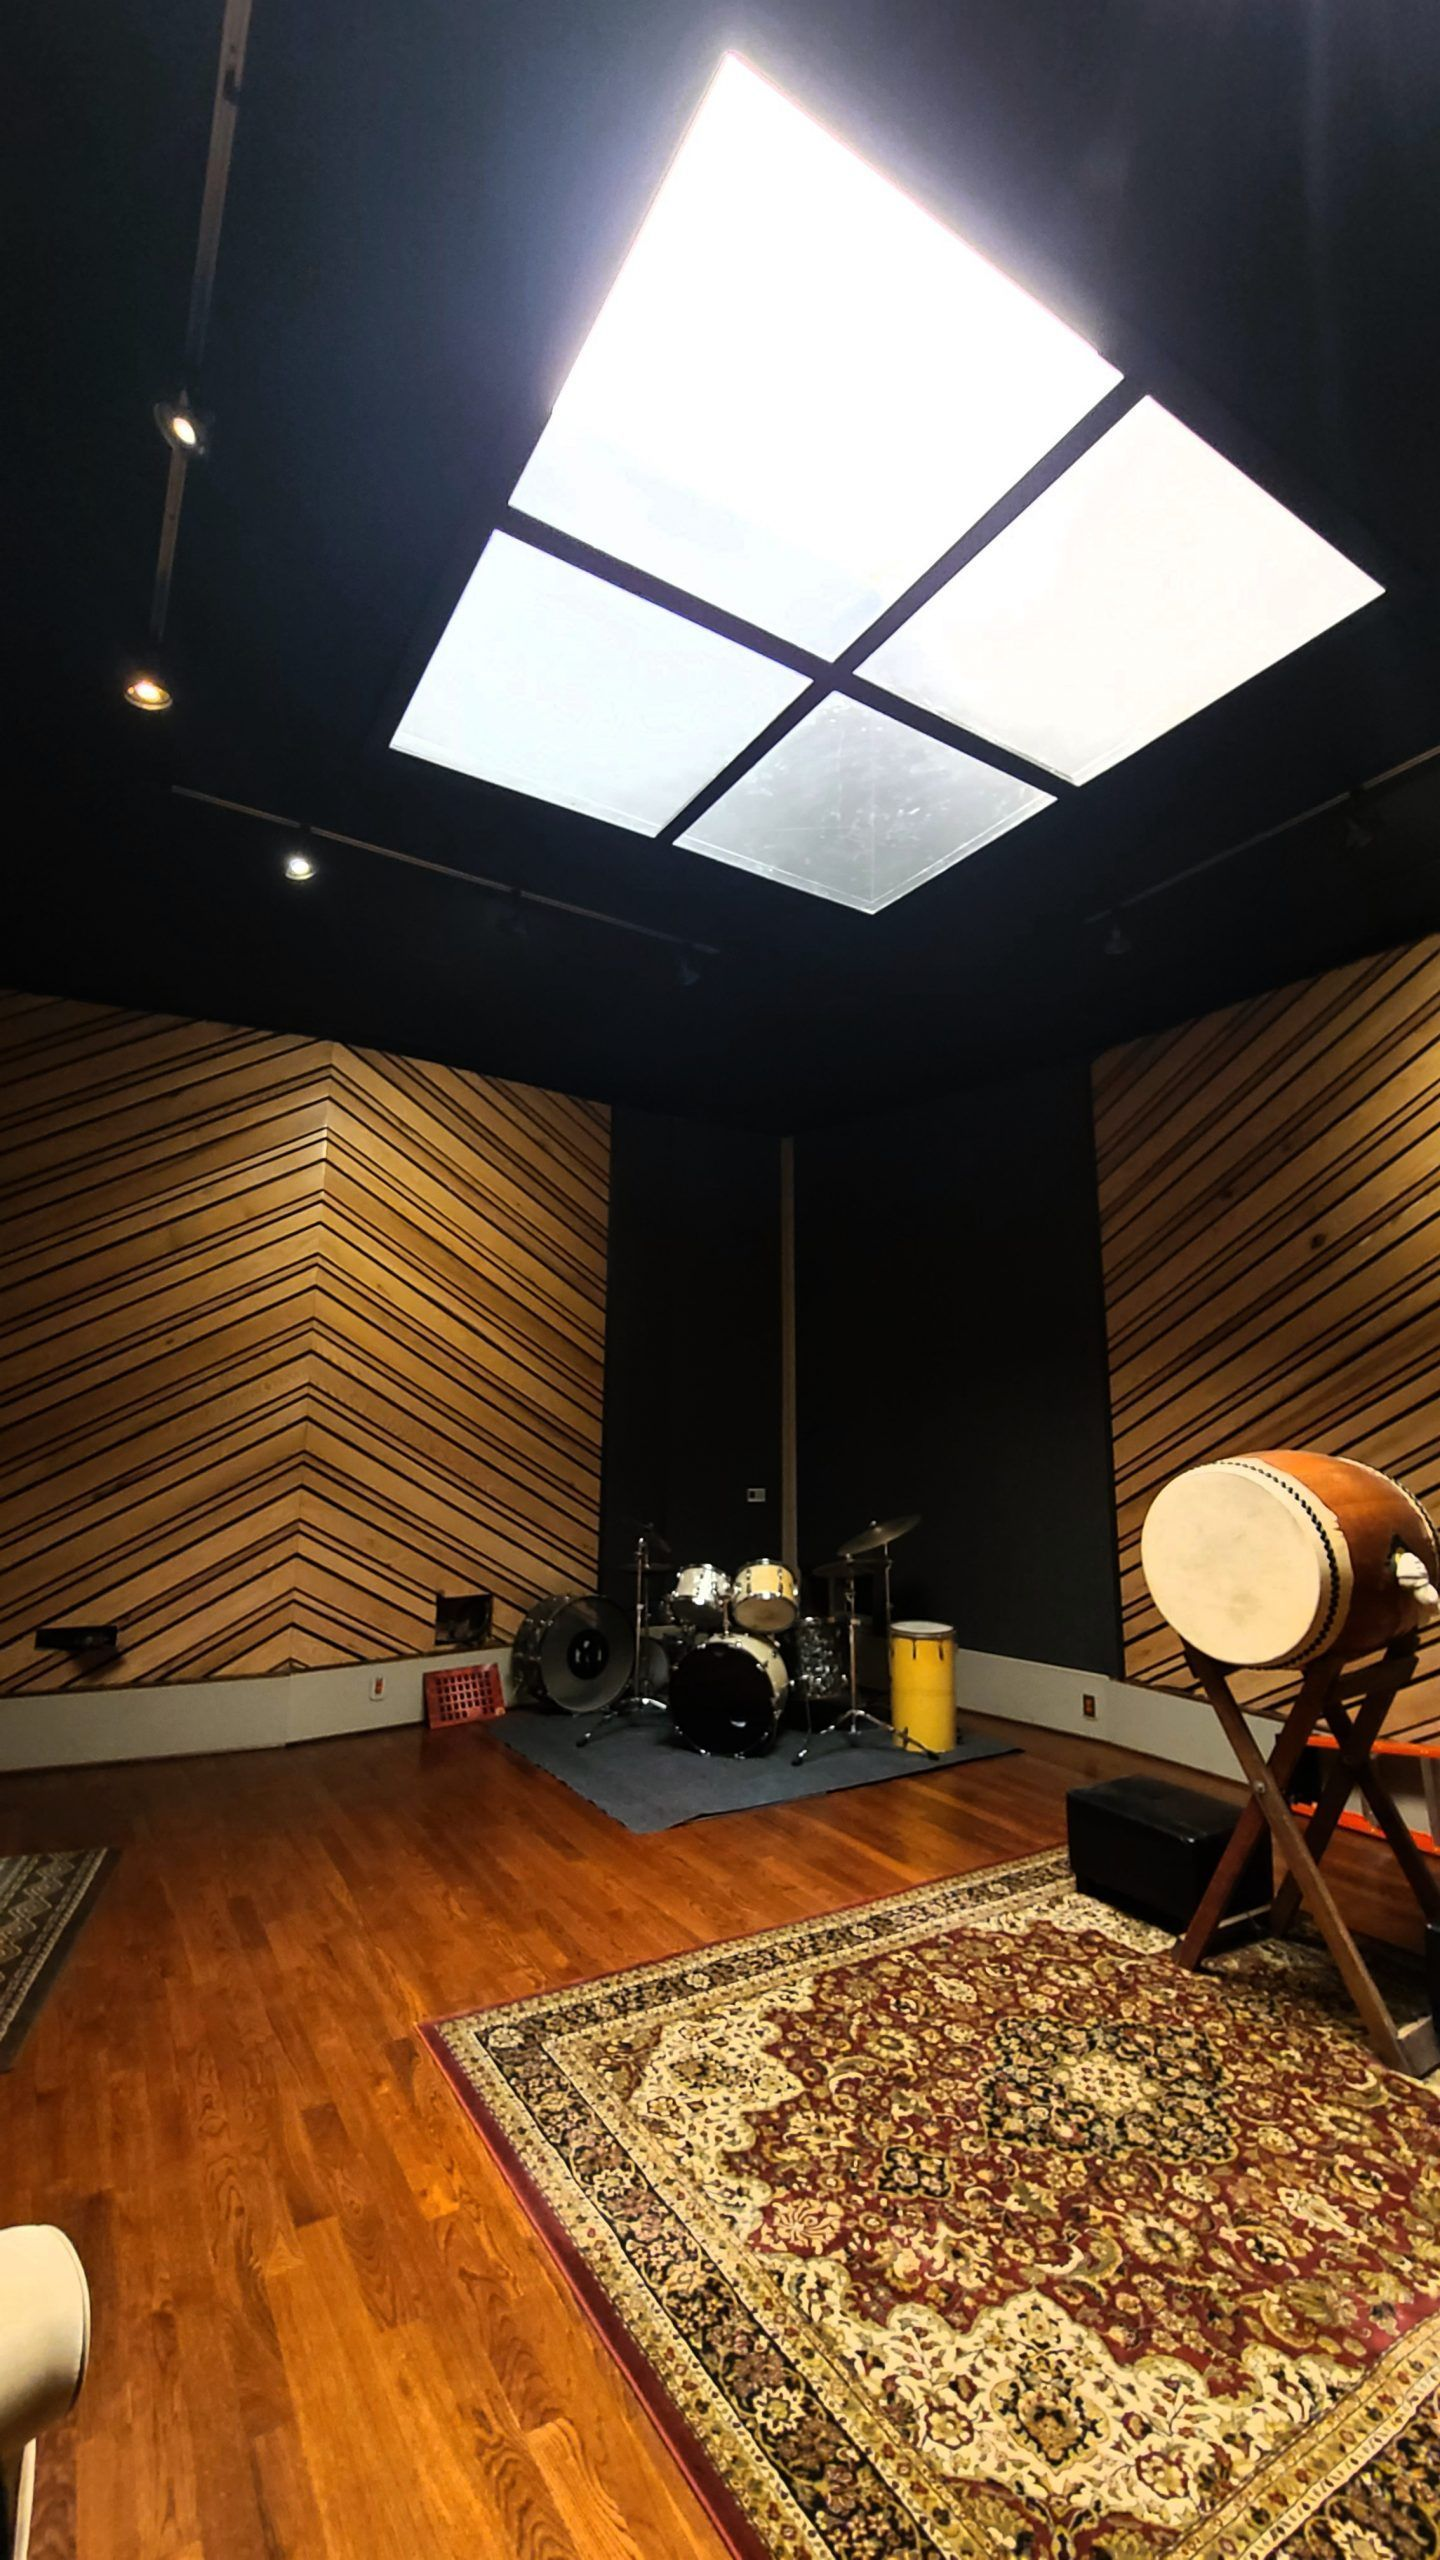 1000 sq. ft. Recording Stage at Mixers Sound, North Hollywood.